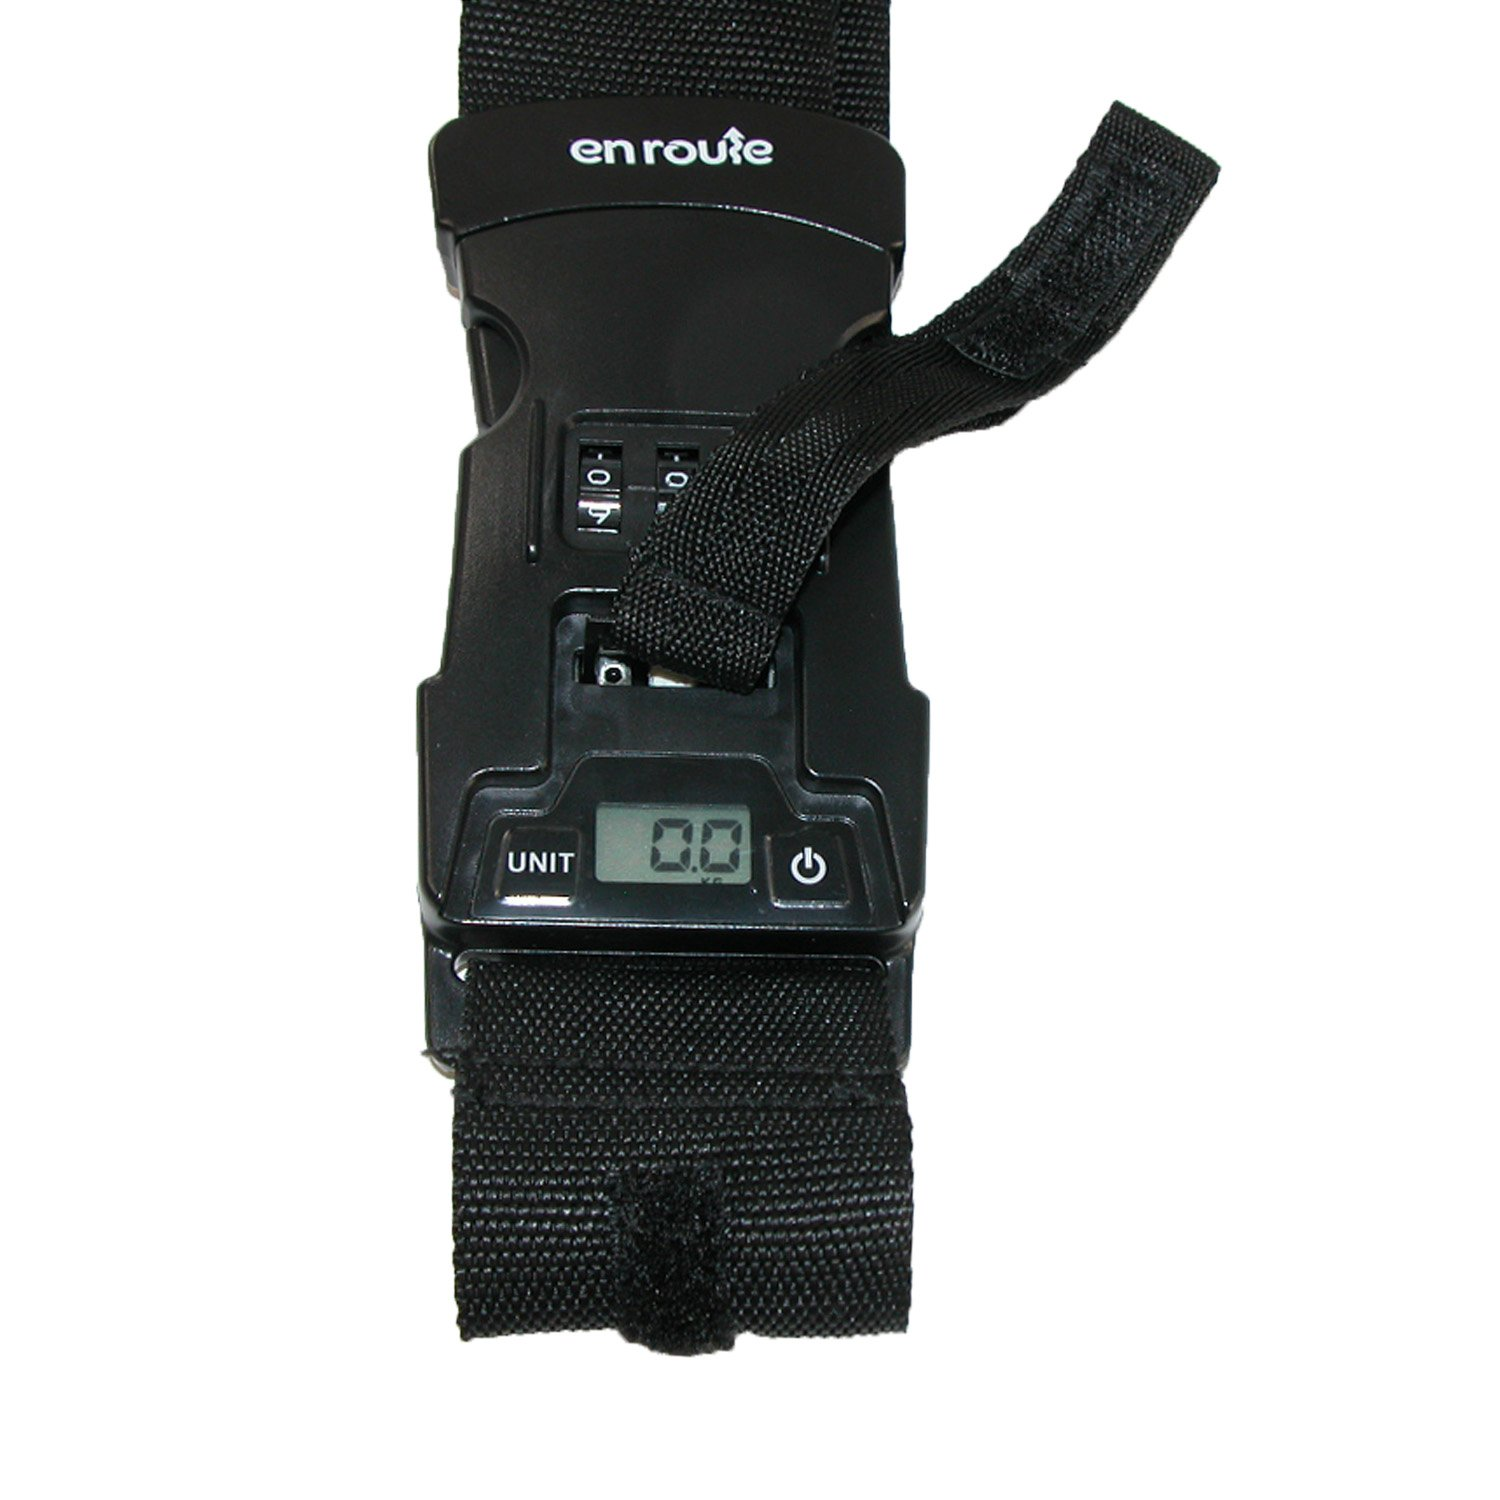 Black Enroute Luggage Strap with Built in Luggage Scale